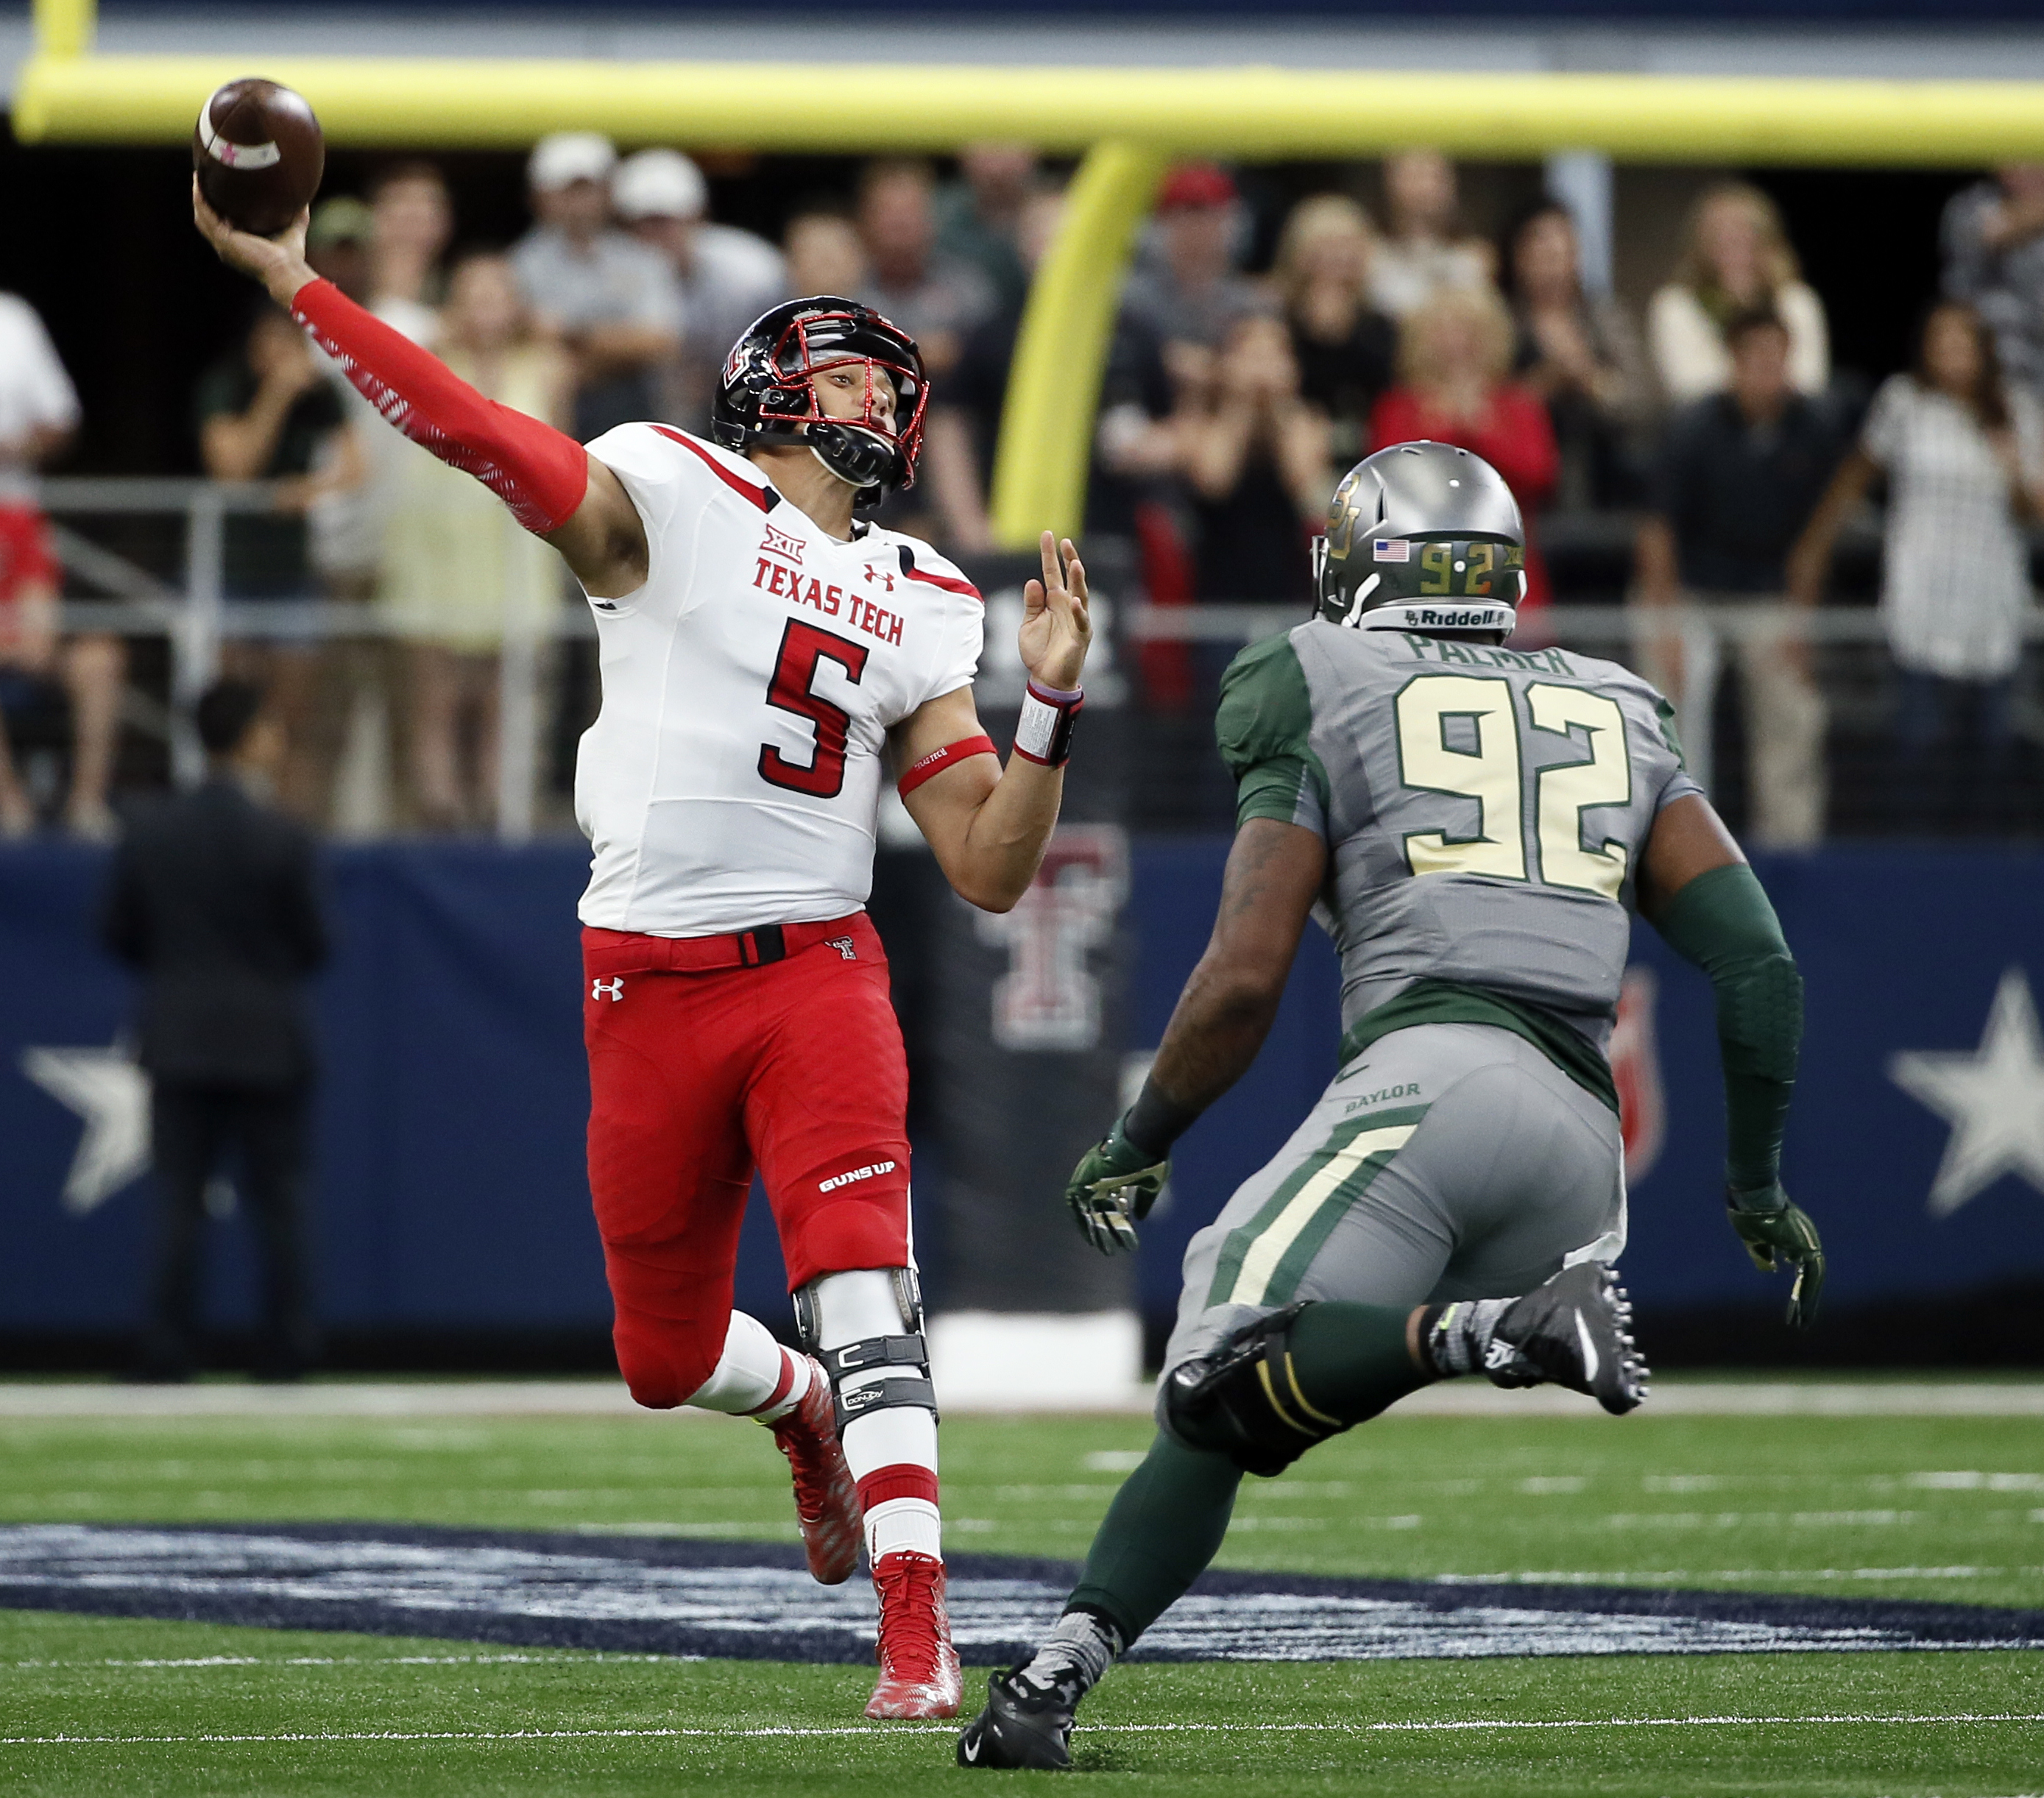 Texas Tech quarterback Patrick Mahomes (5) throws a long touchdown pass to wide receiver Zach Austin under pressure from Baylor defensive end Jamal Palmer (92) in the first half of an NCAA college football game Saturday, Oct. 3, 2015, in Arlington, Texas.